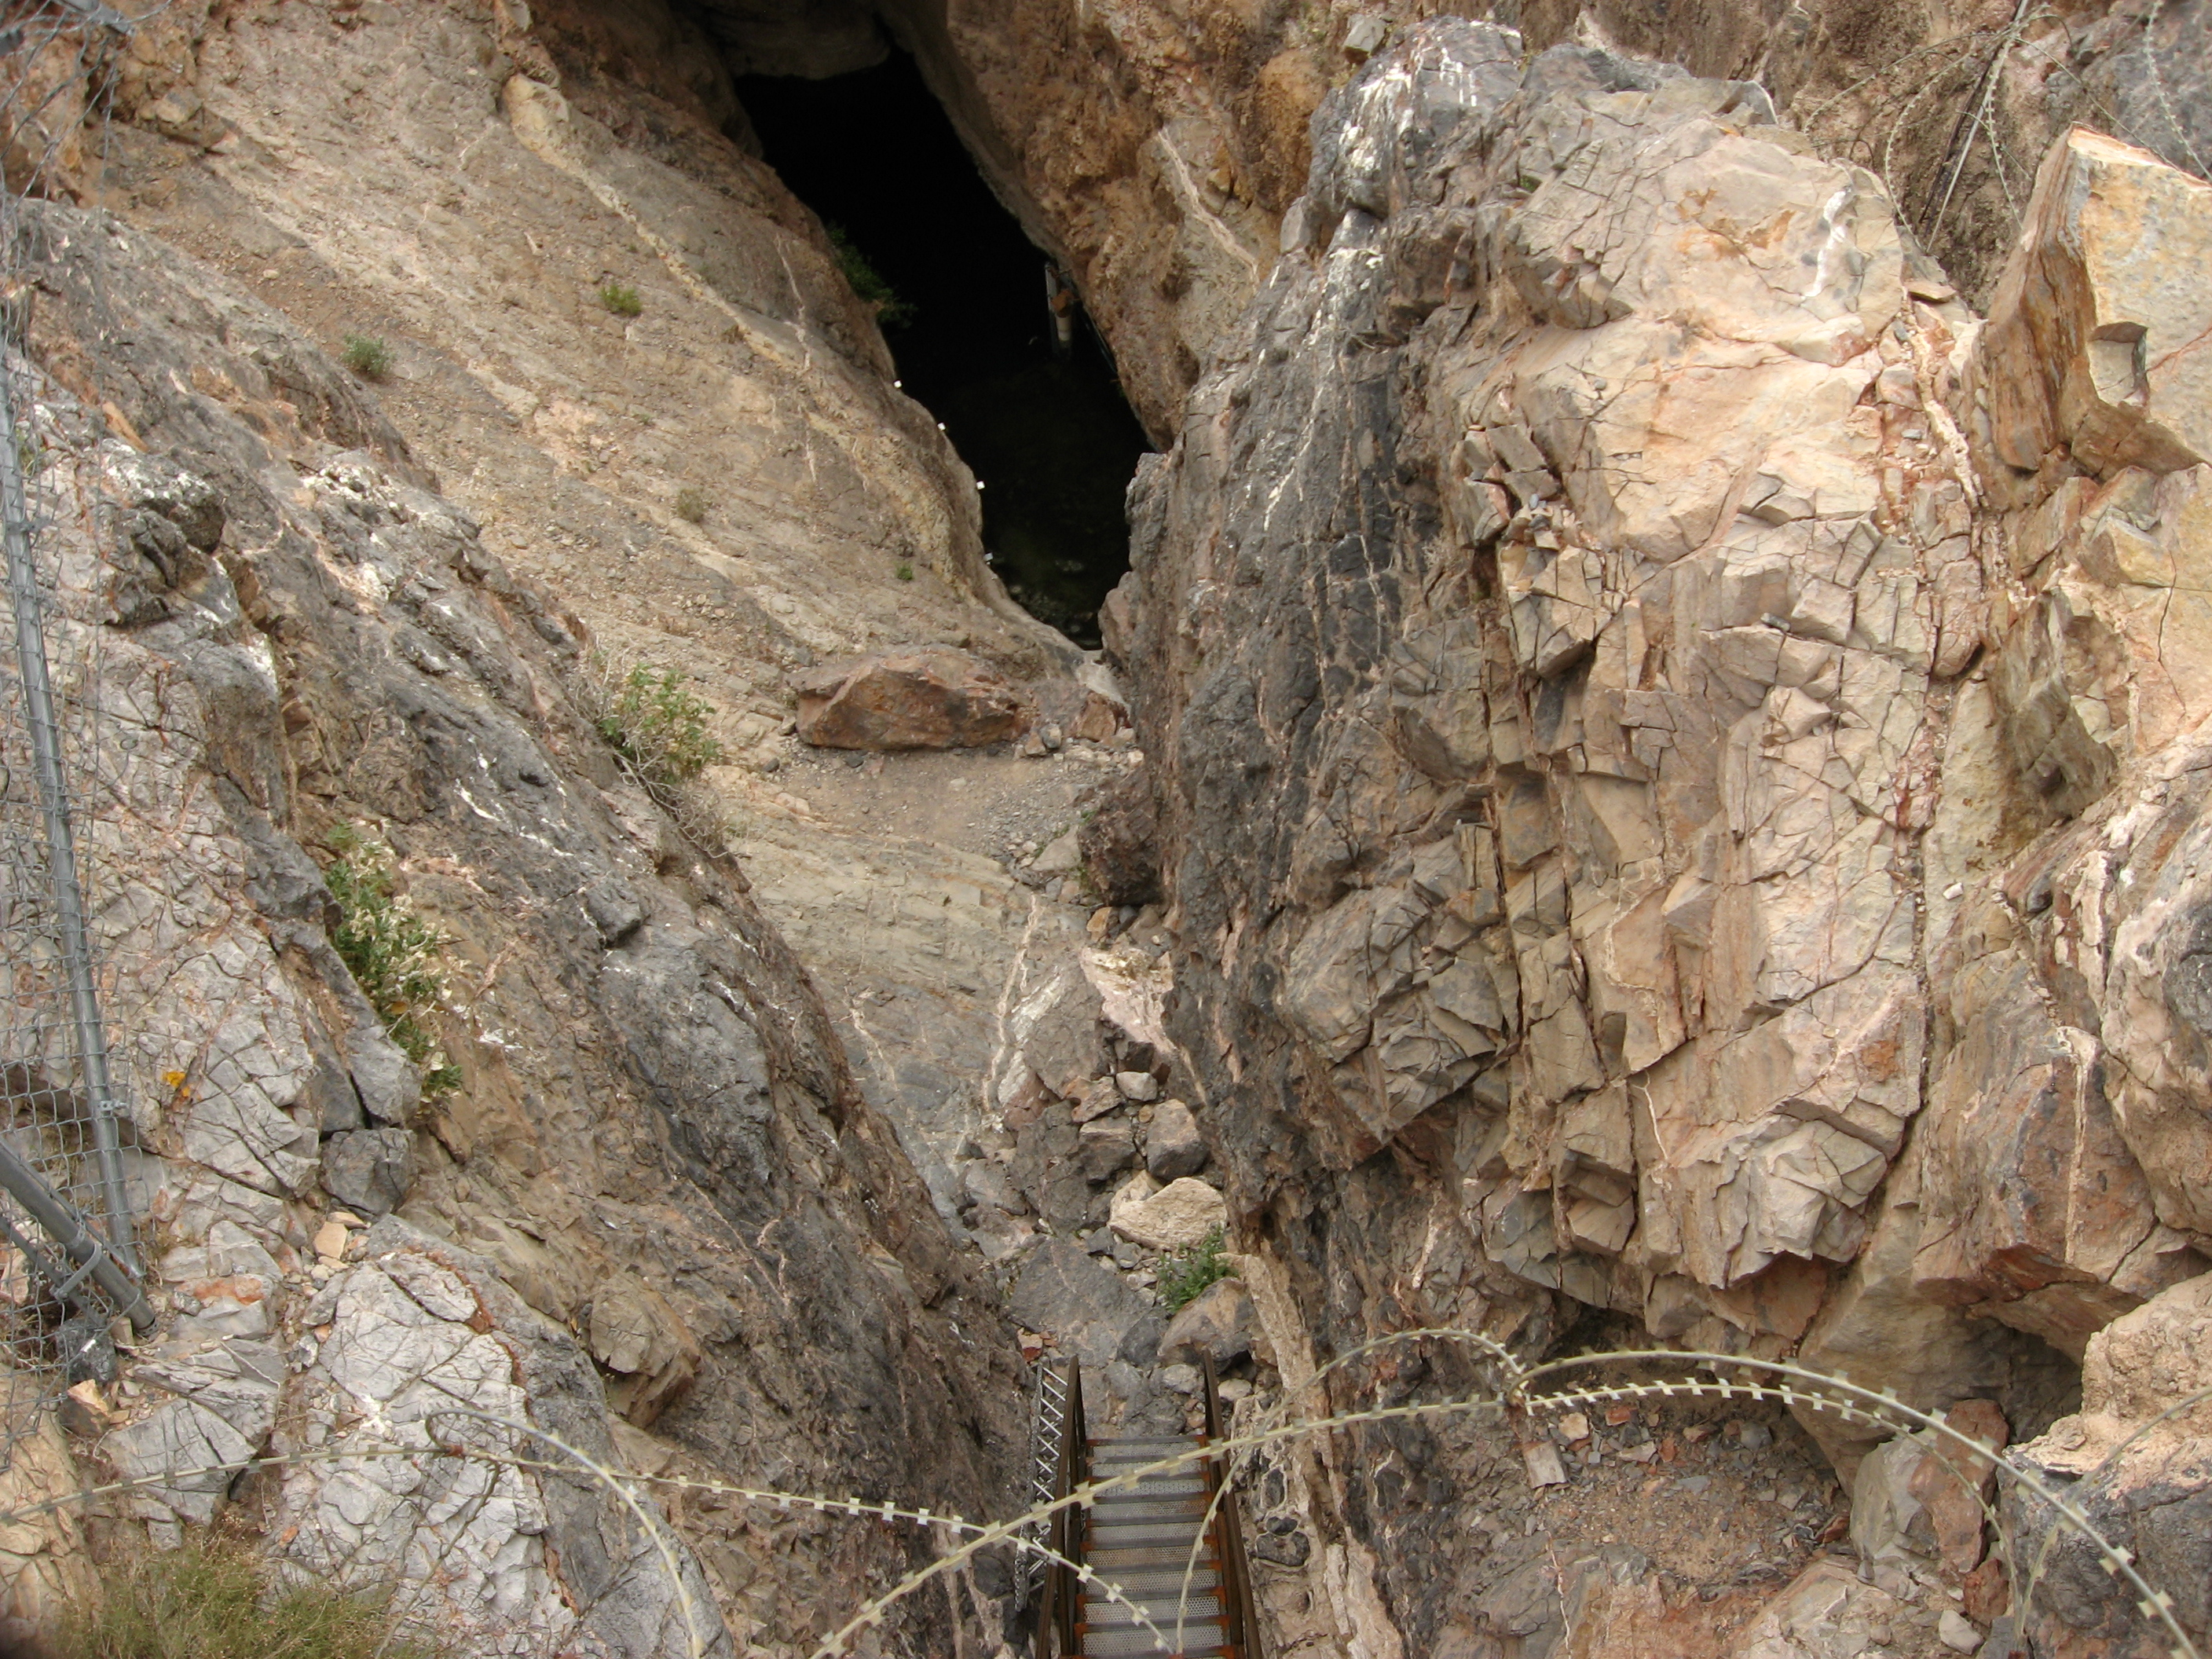 Devils Hole Is Home To What Naturally Occurring Endangered Critter